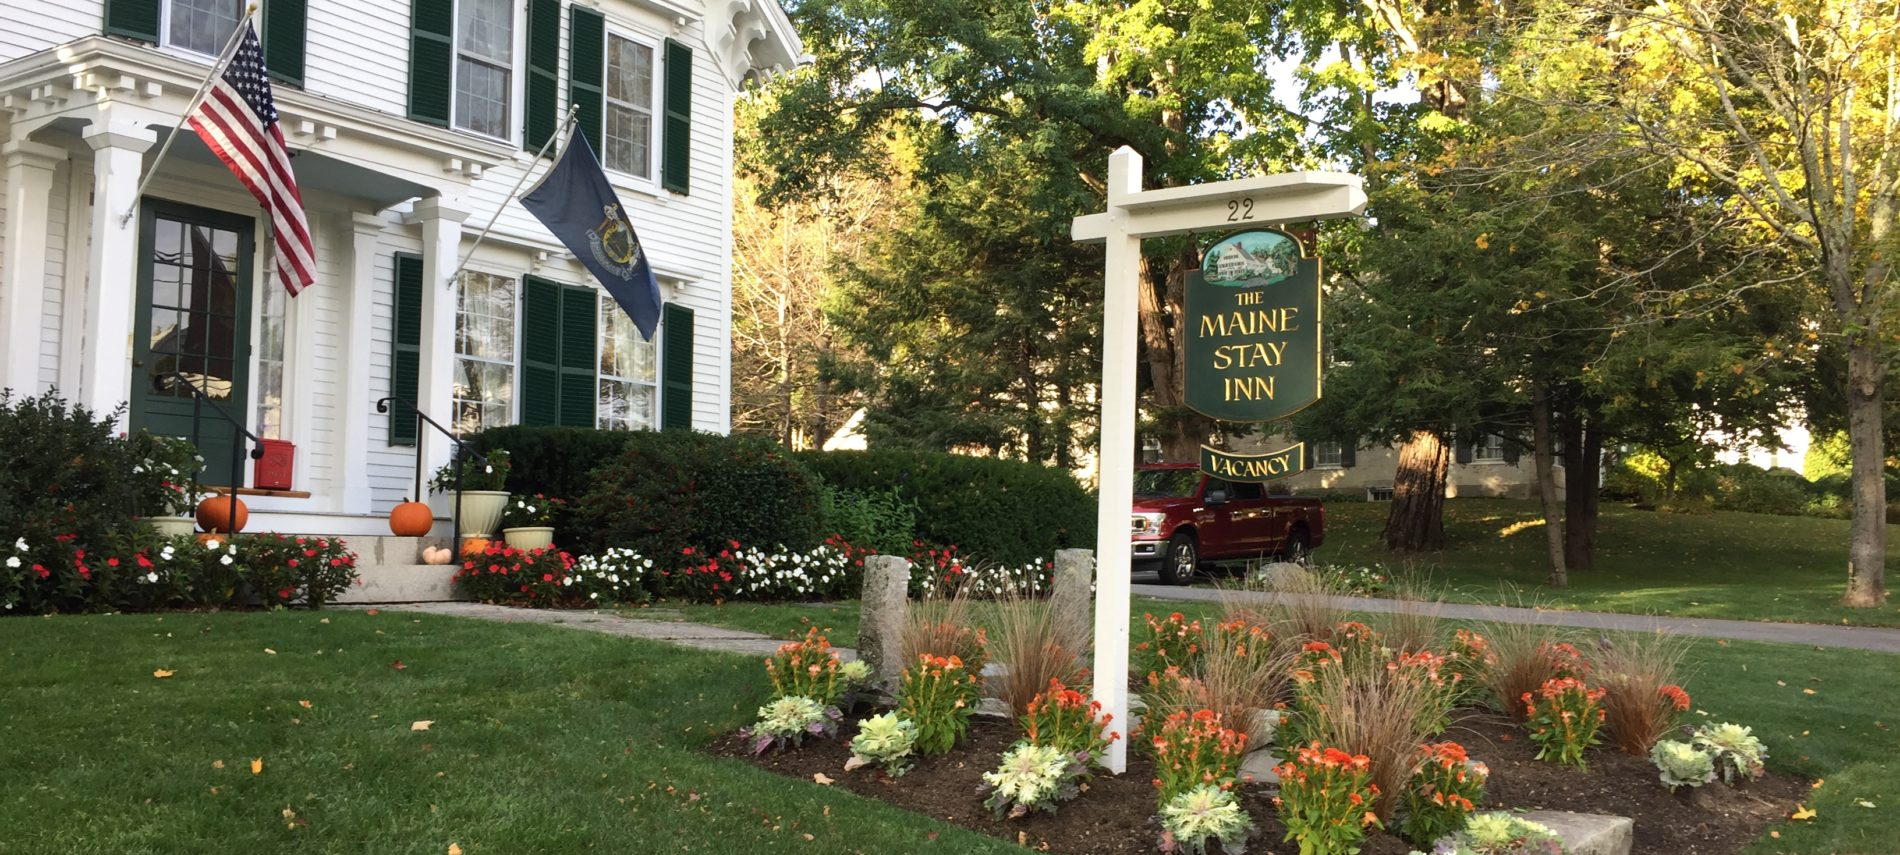 Fall view of the Camden Maine Stay Inn